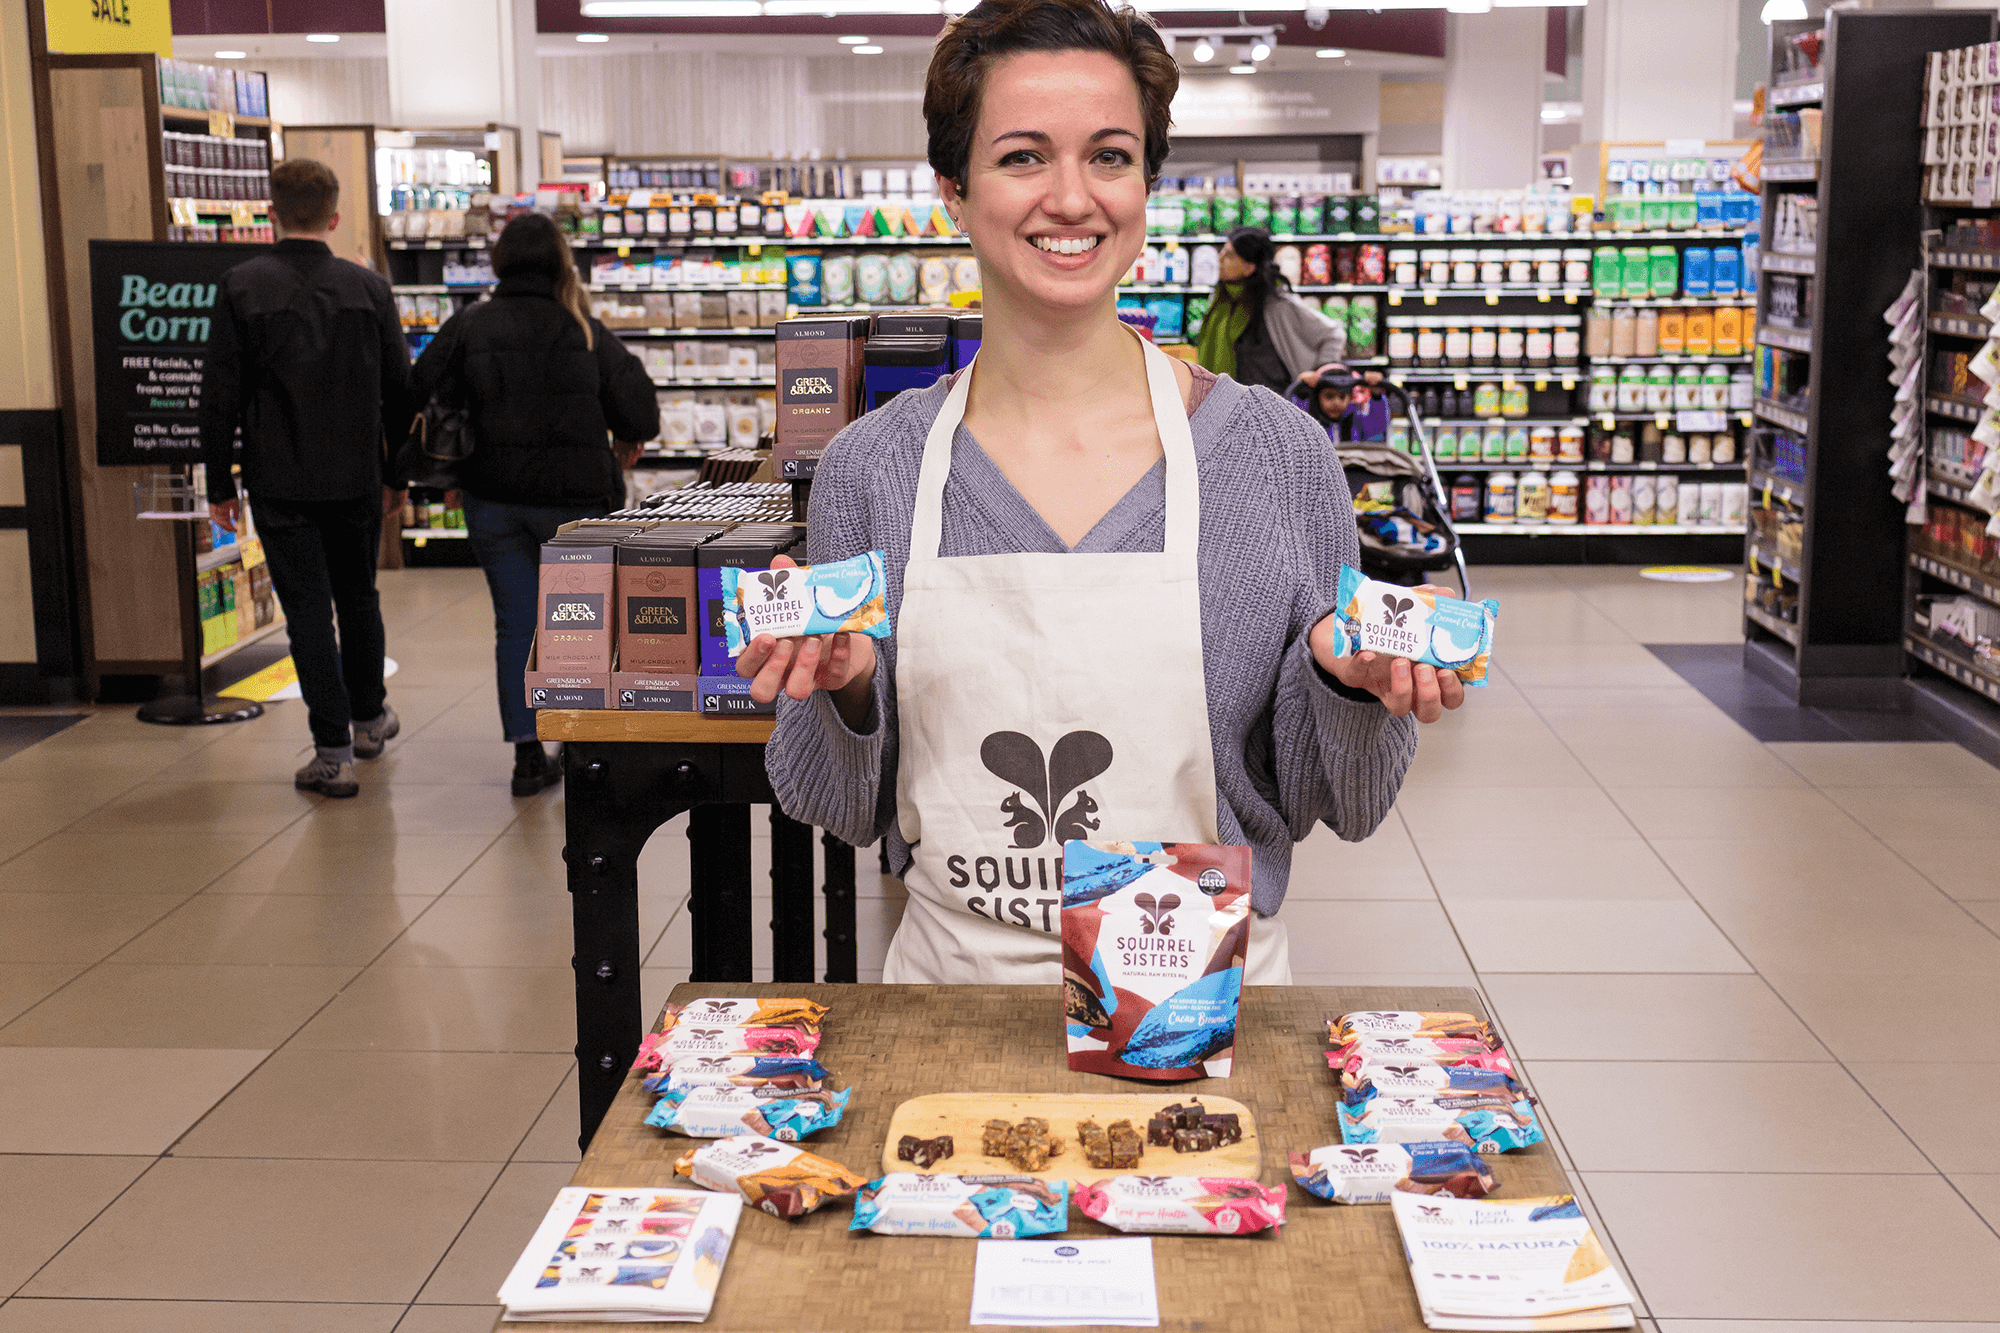 Female brand ambassador with short, dark hair standing behind a table giving out free samples of Squirrel Sisters healthy snack bars.